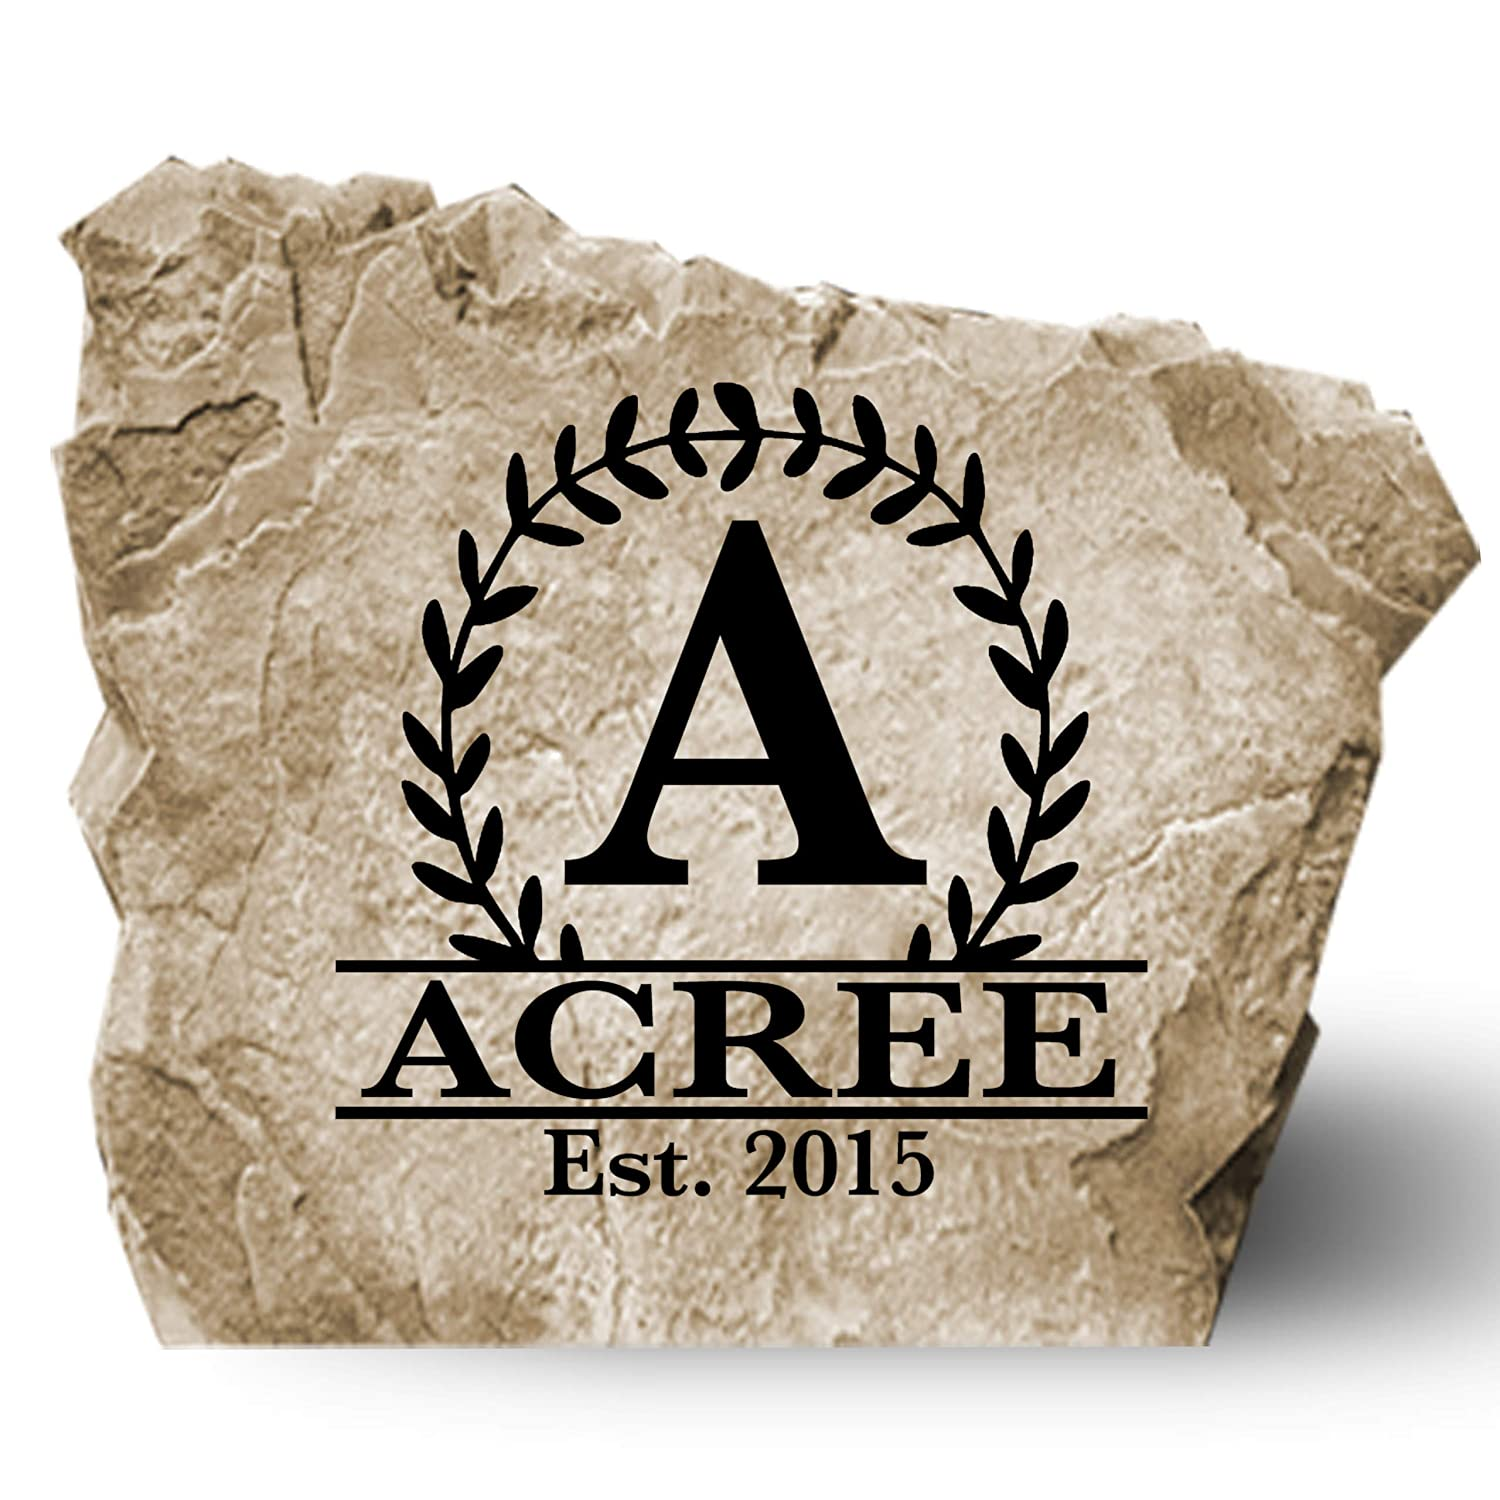 "Personalized Engraved Monogram Name Established Date Garden Stone - Landscape Stone - Sandstone Color - 14"" W x 14"" H"